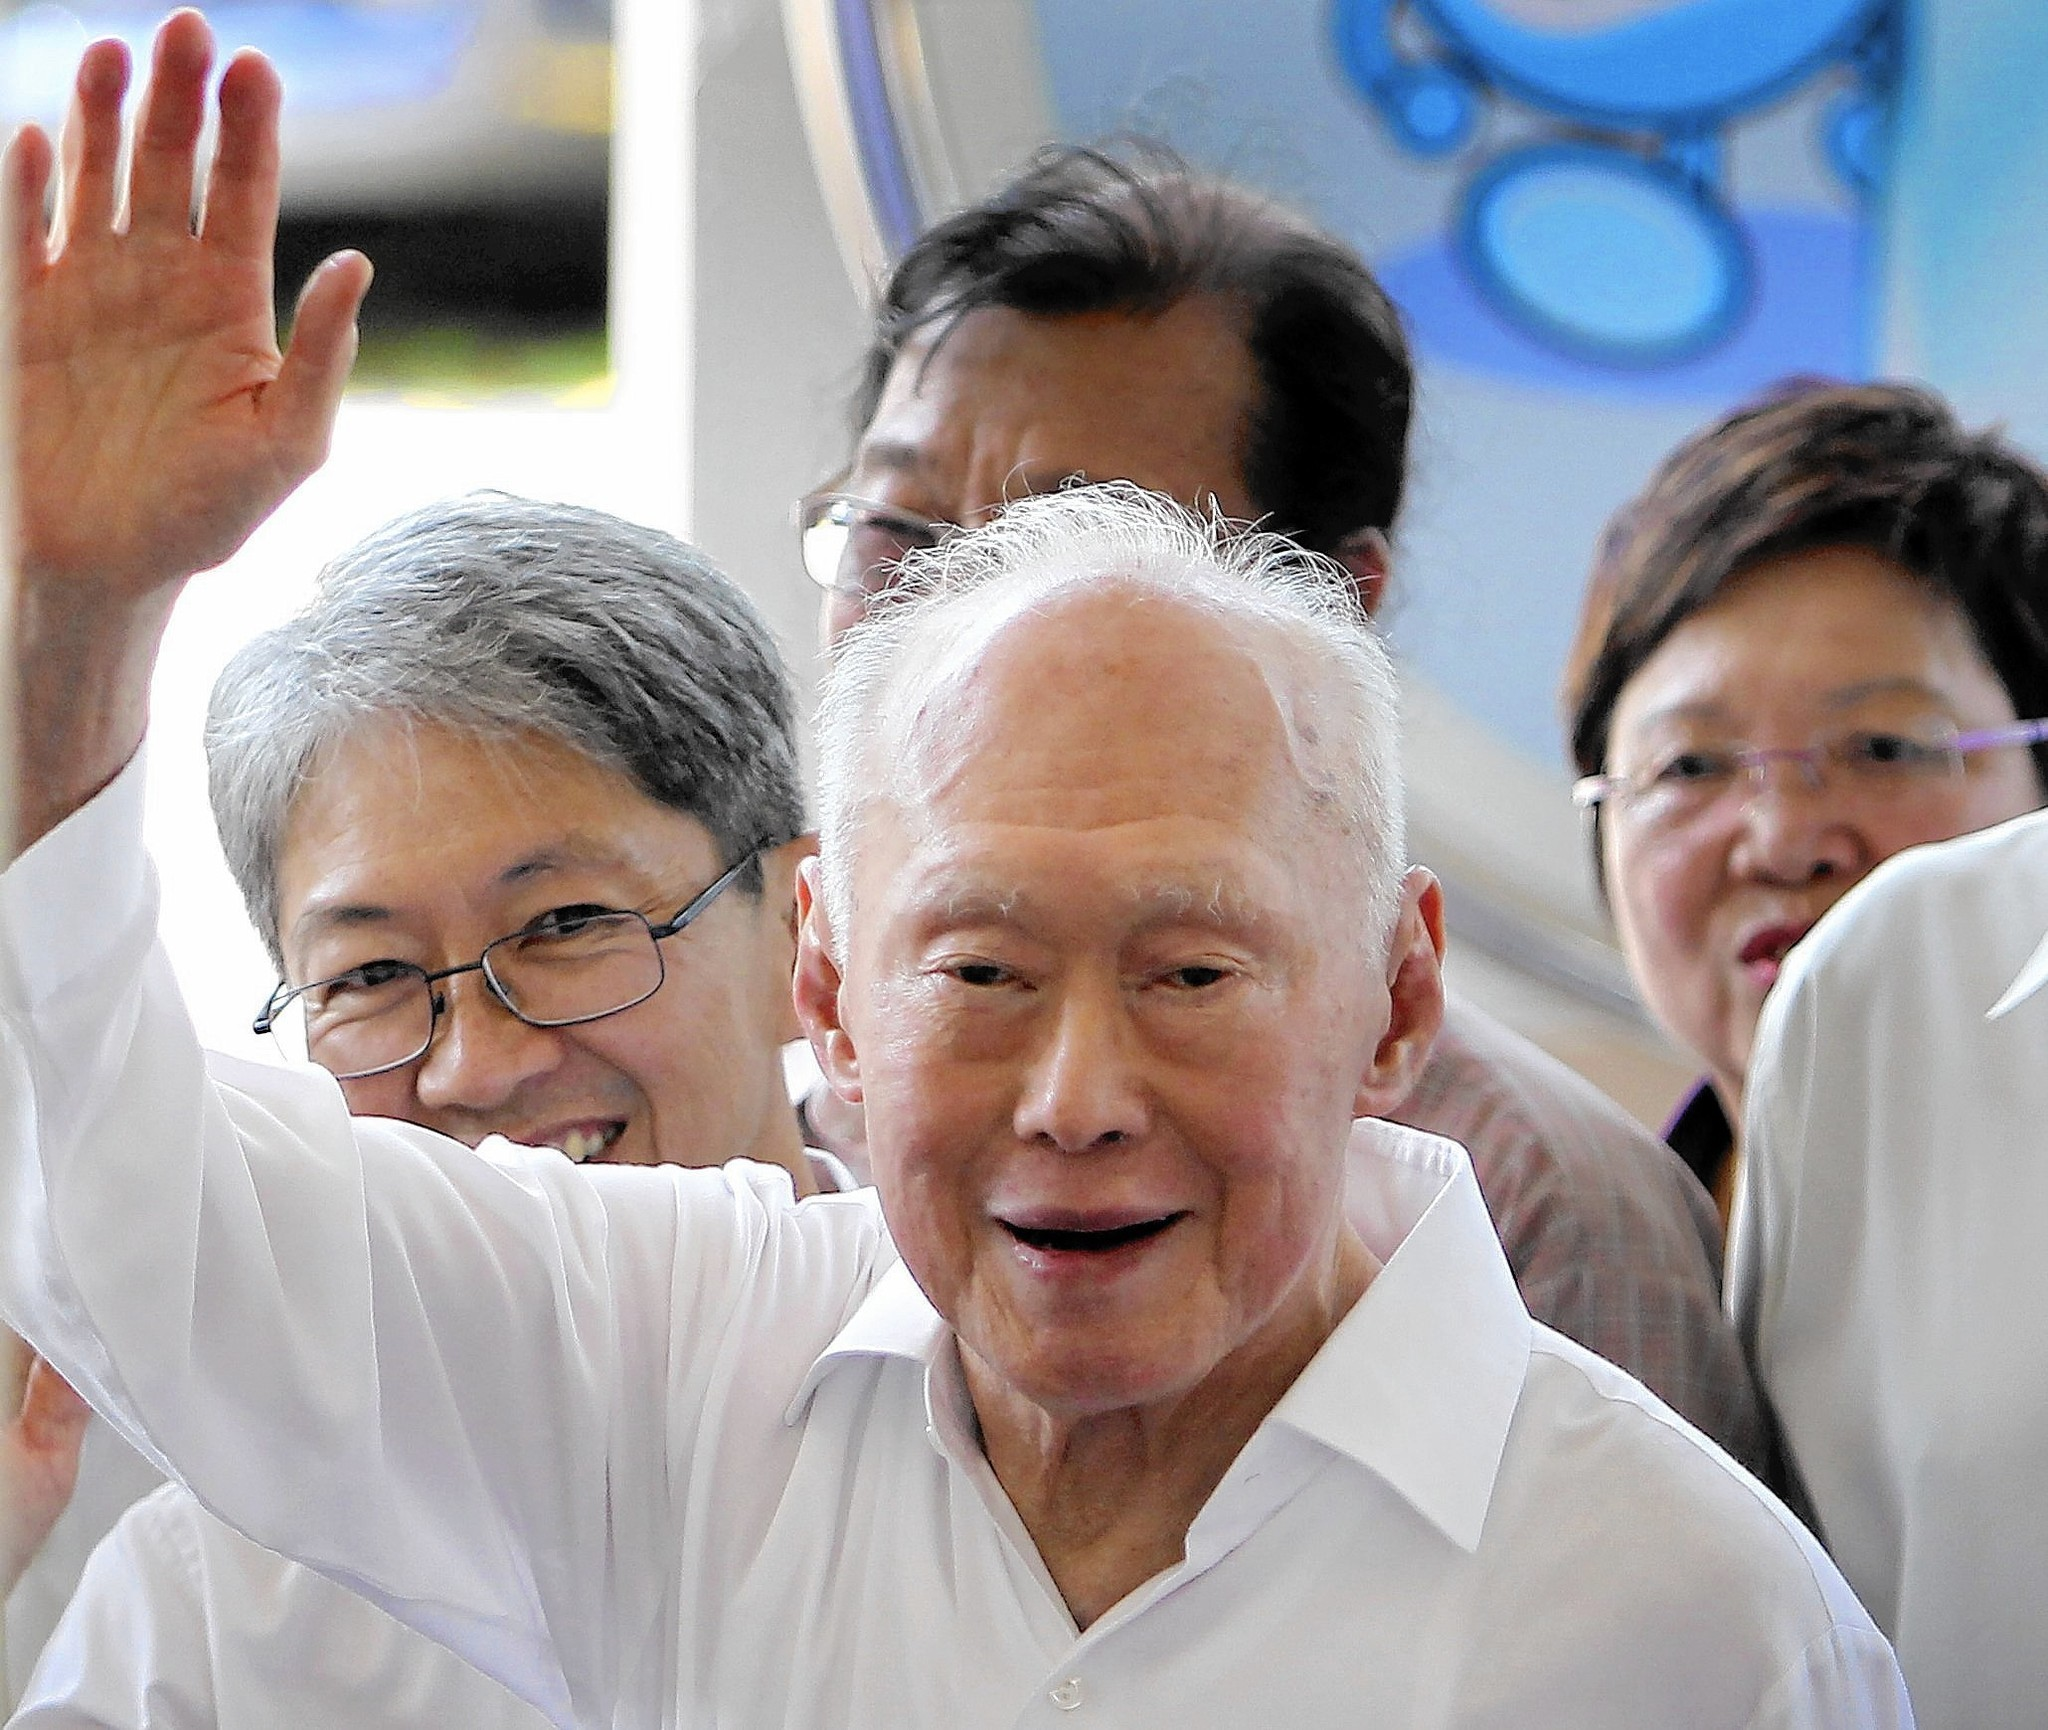 State Funeral For Lee Kuan Yew Lee Kuan Yew Lies in State as